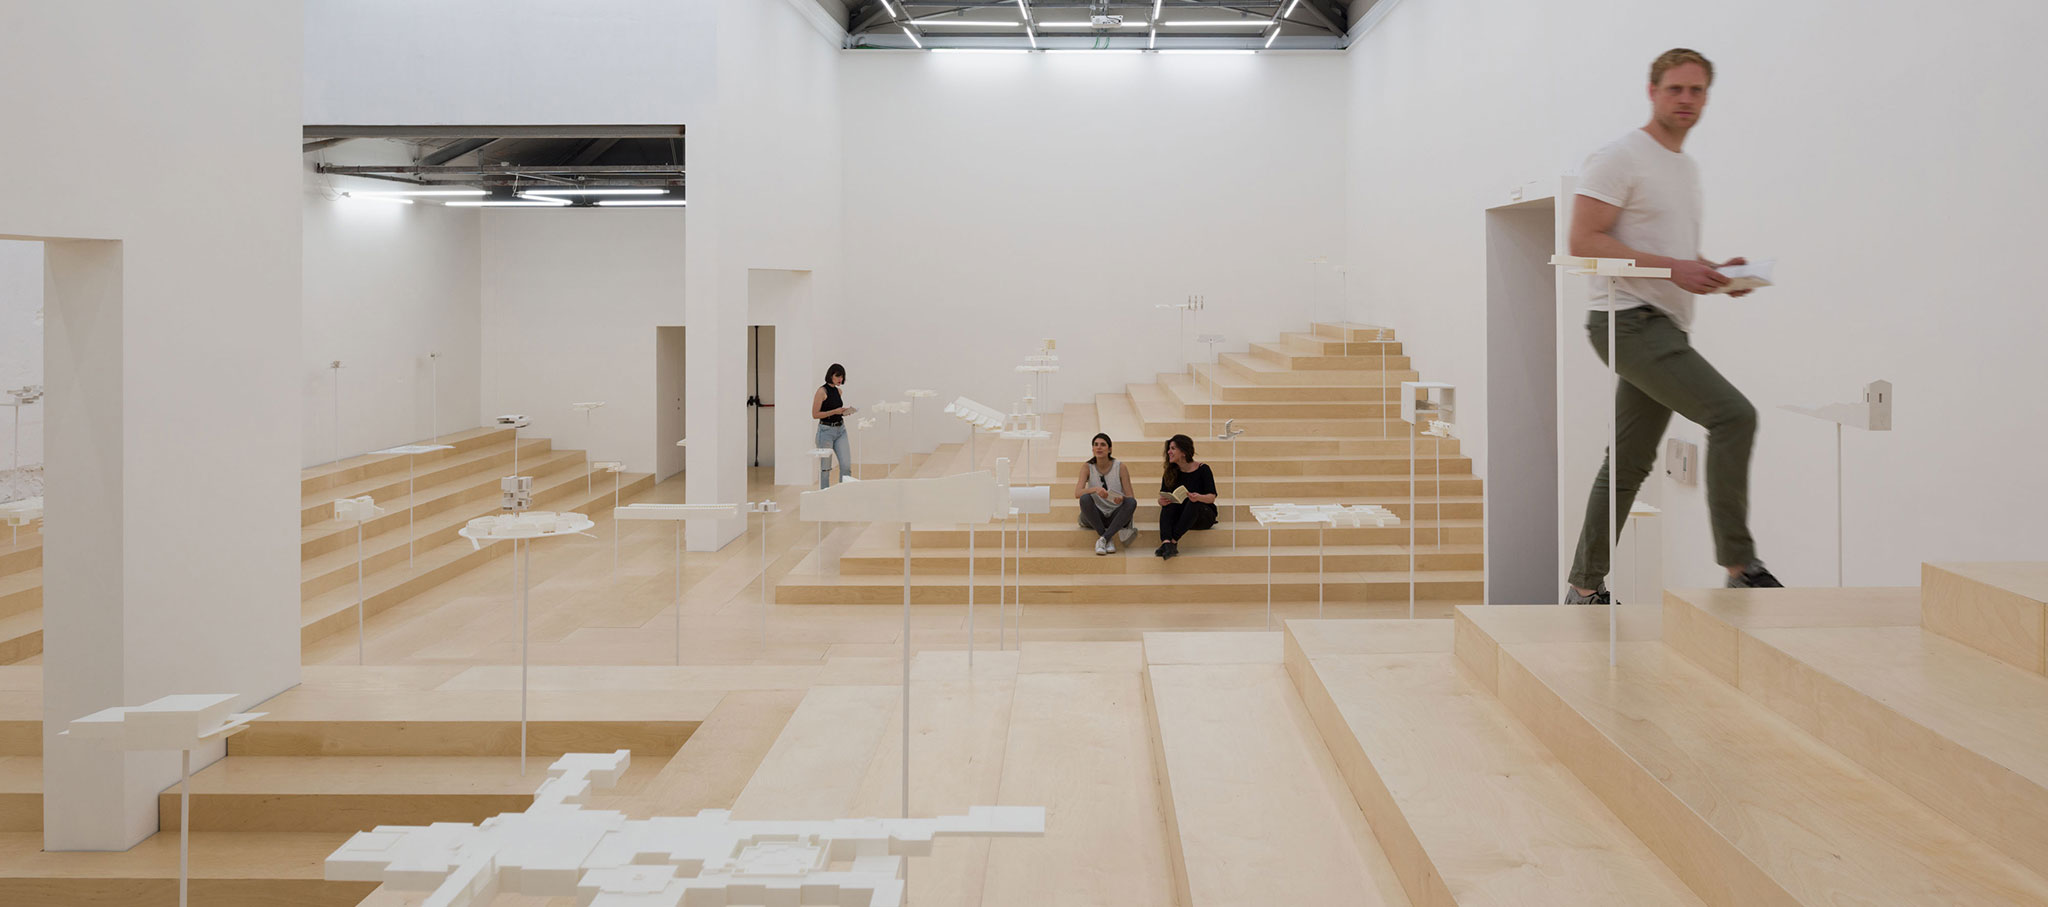 Interior view. The School of Athens, Neiheiser Argyros. Greece Pavilion for the Biennale Architettura di Venezia 2018. Photograph by Ugo Carmeni